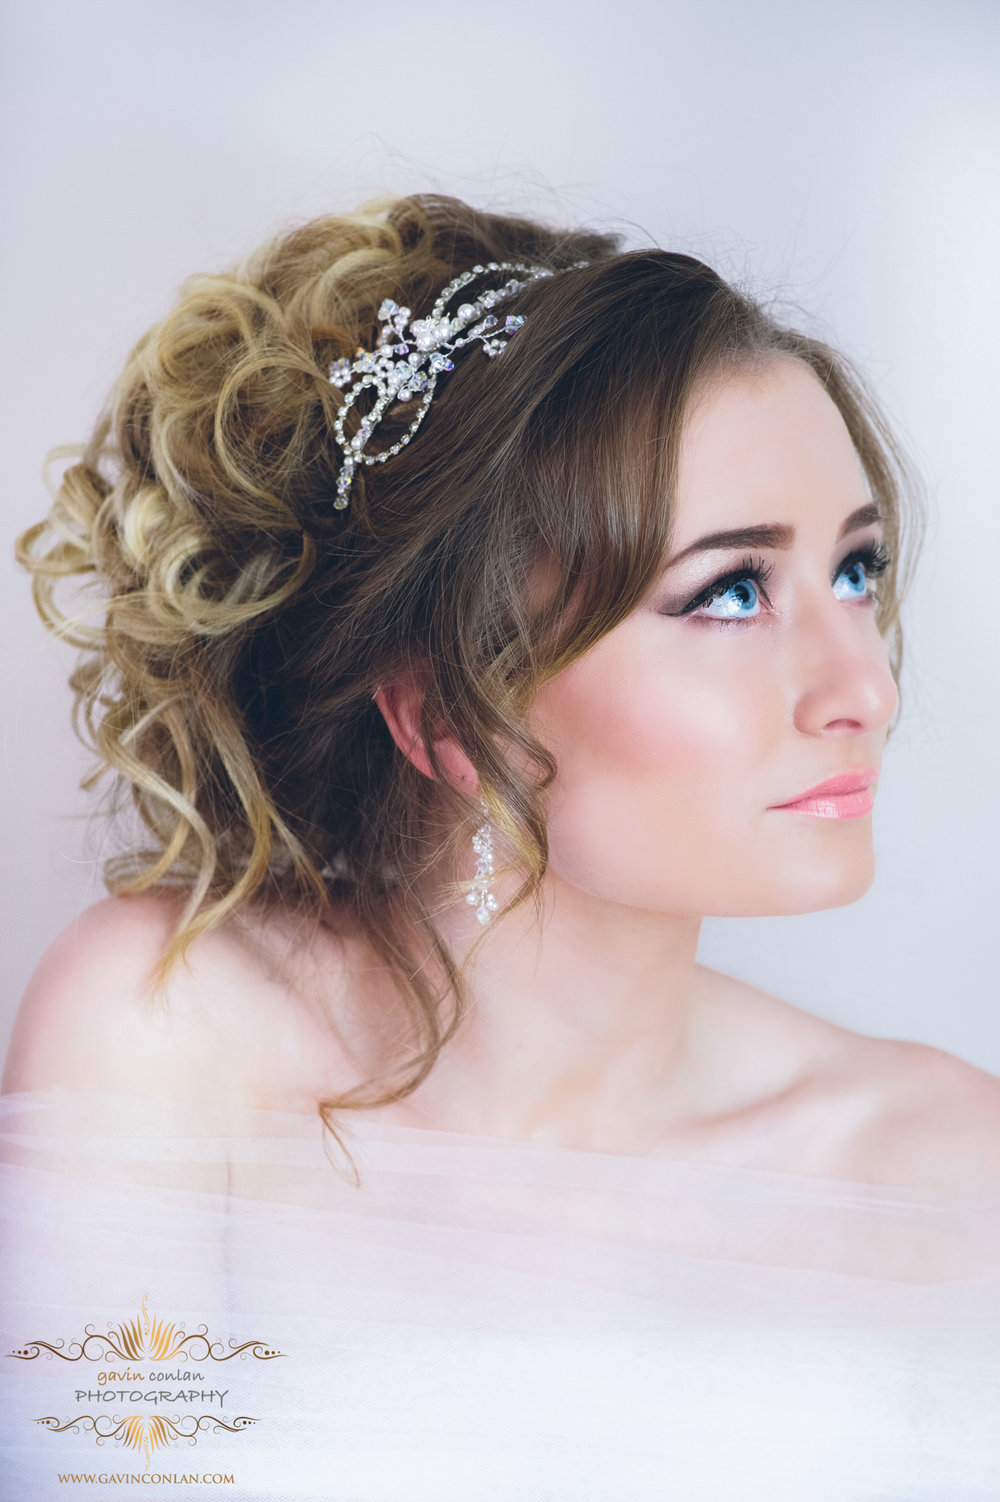 creative-bridal-hair-make-up-jewellery-photo-shoot-gavinconlanphotography-19